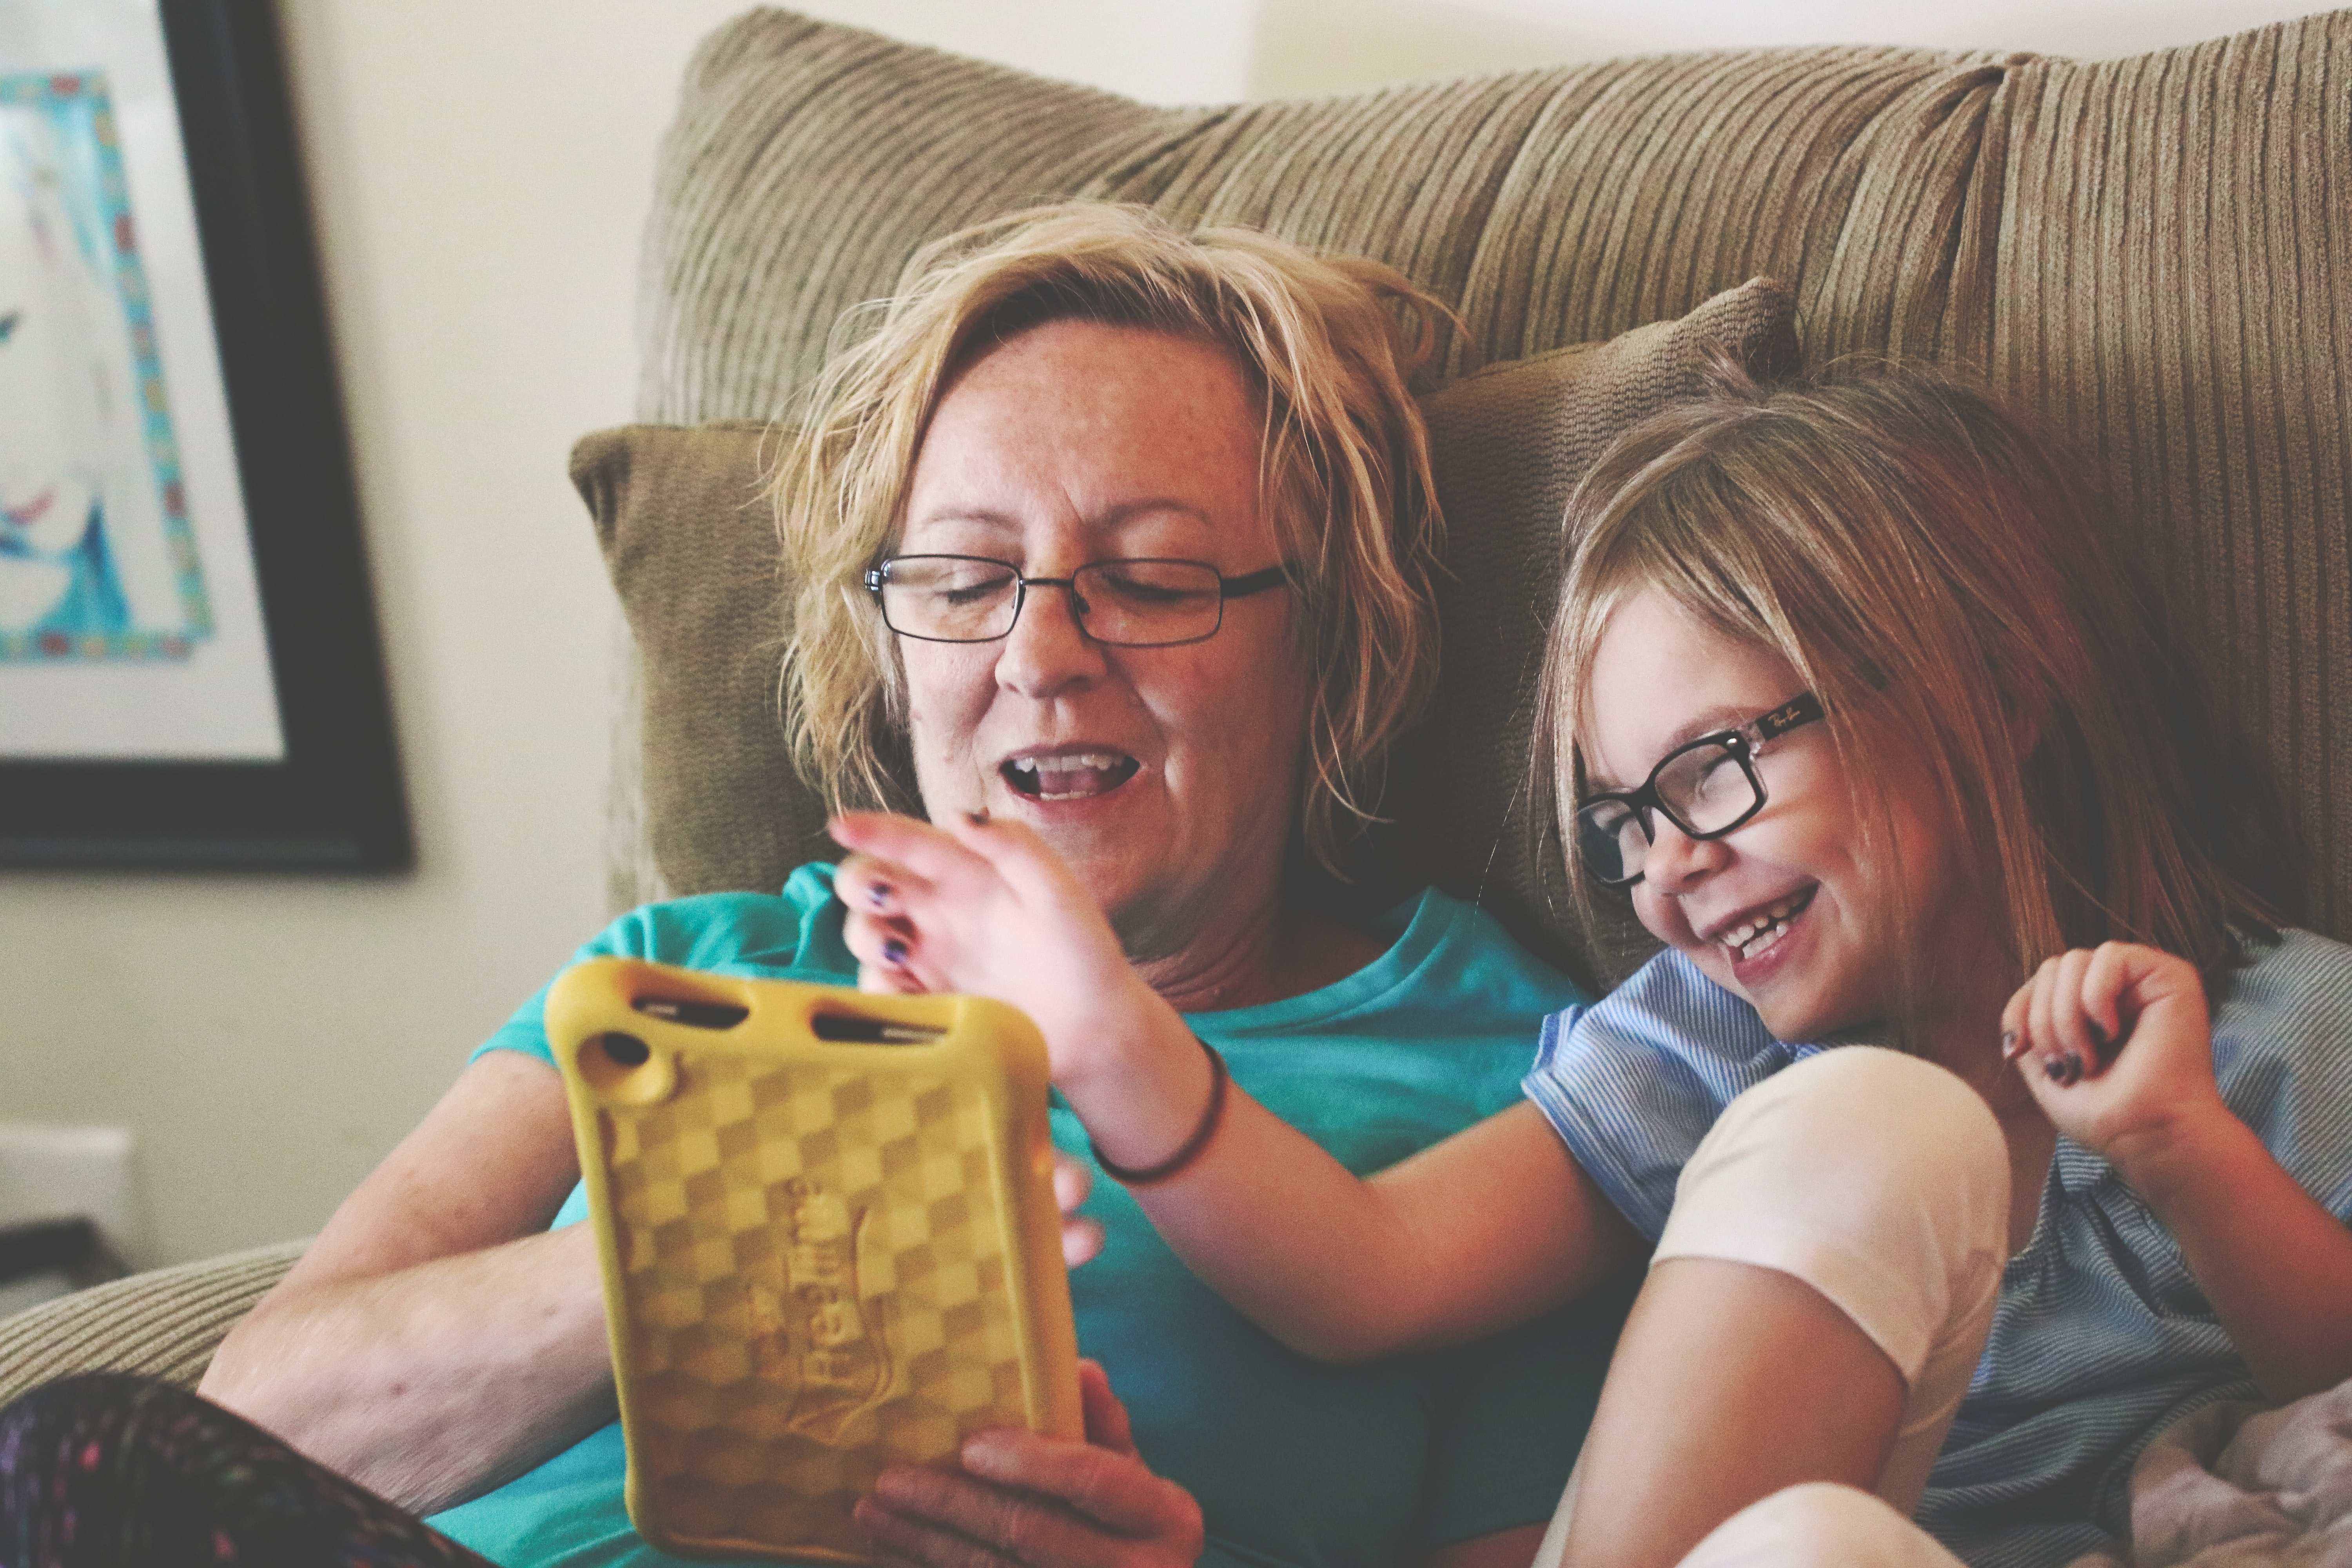 Woman and girl laughing together while using a tablet